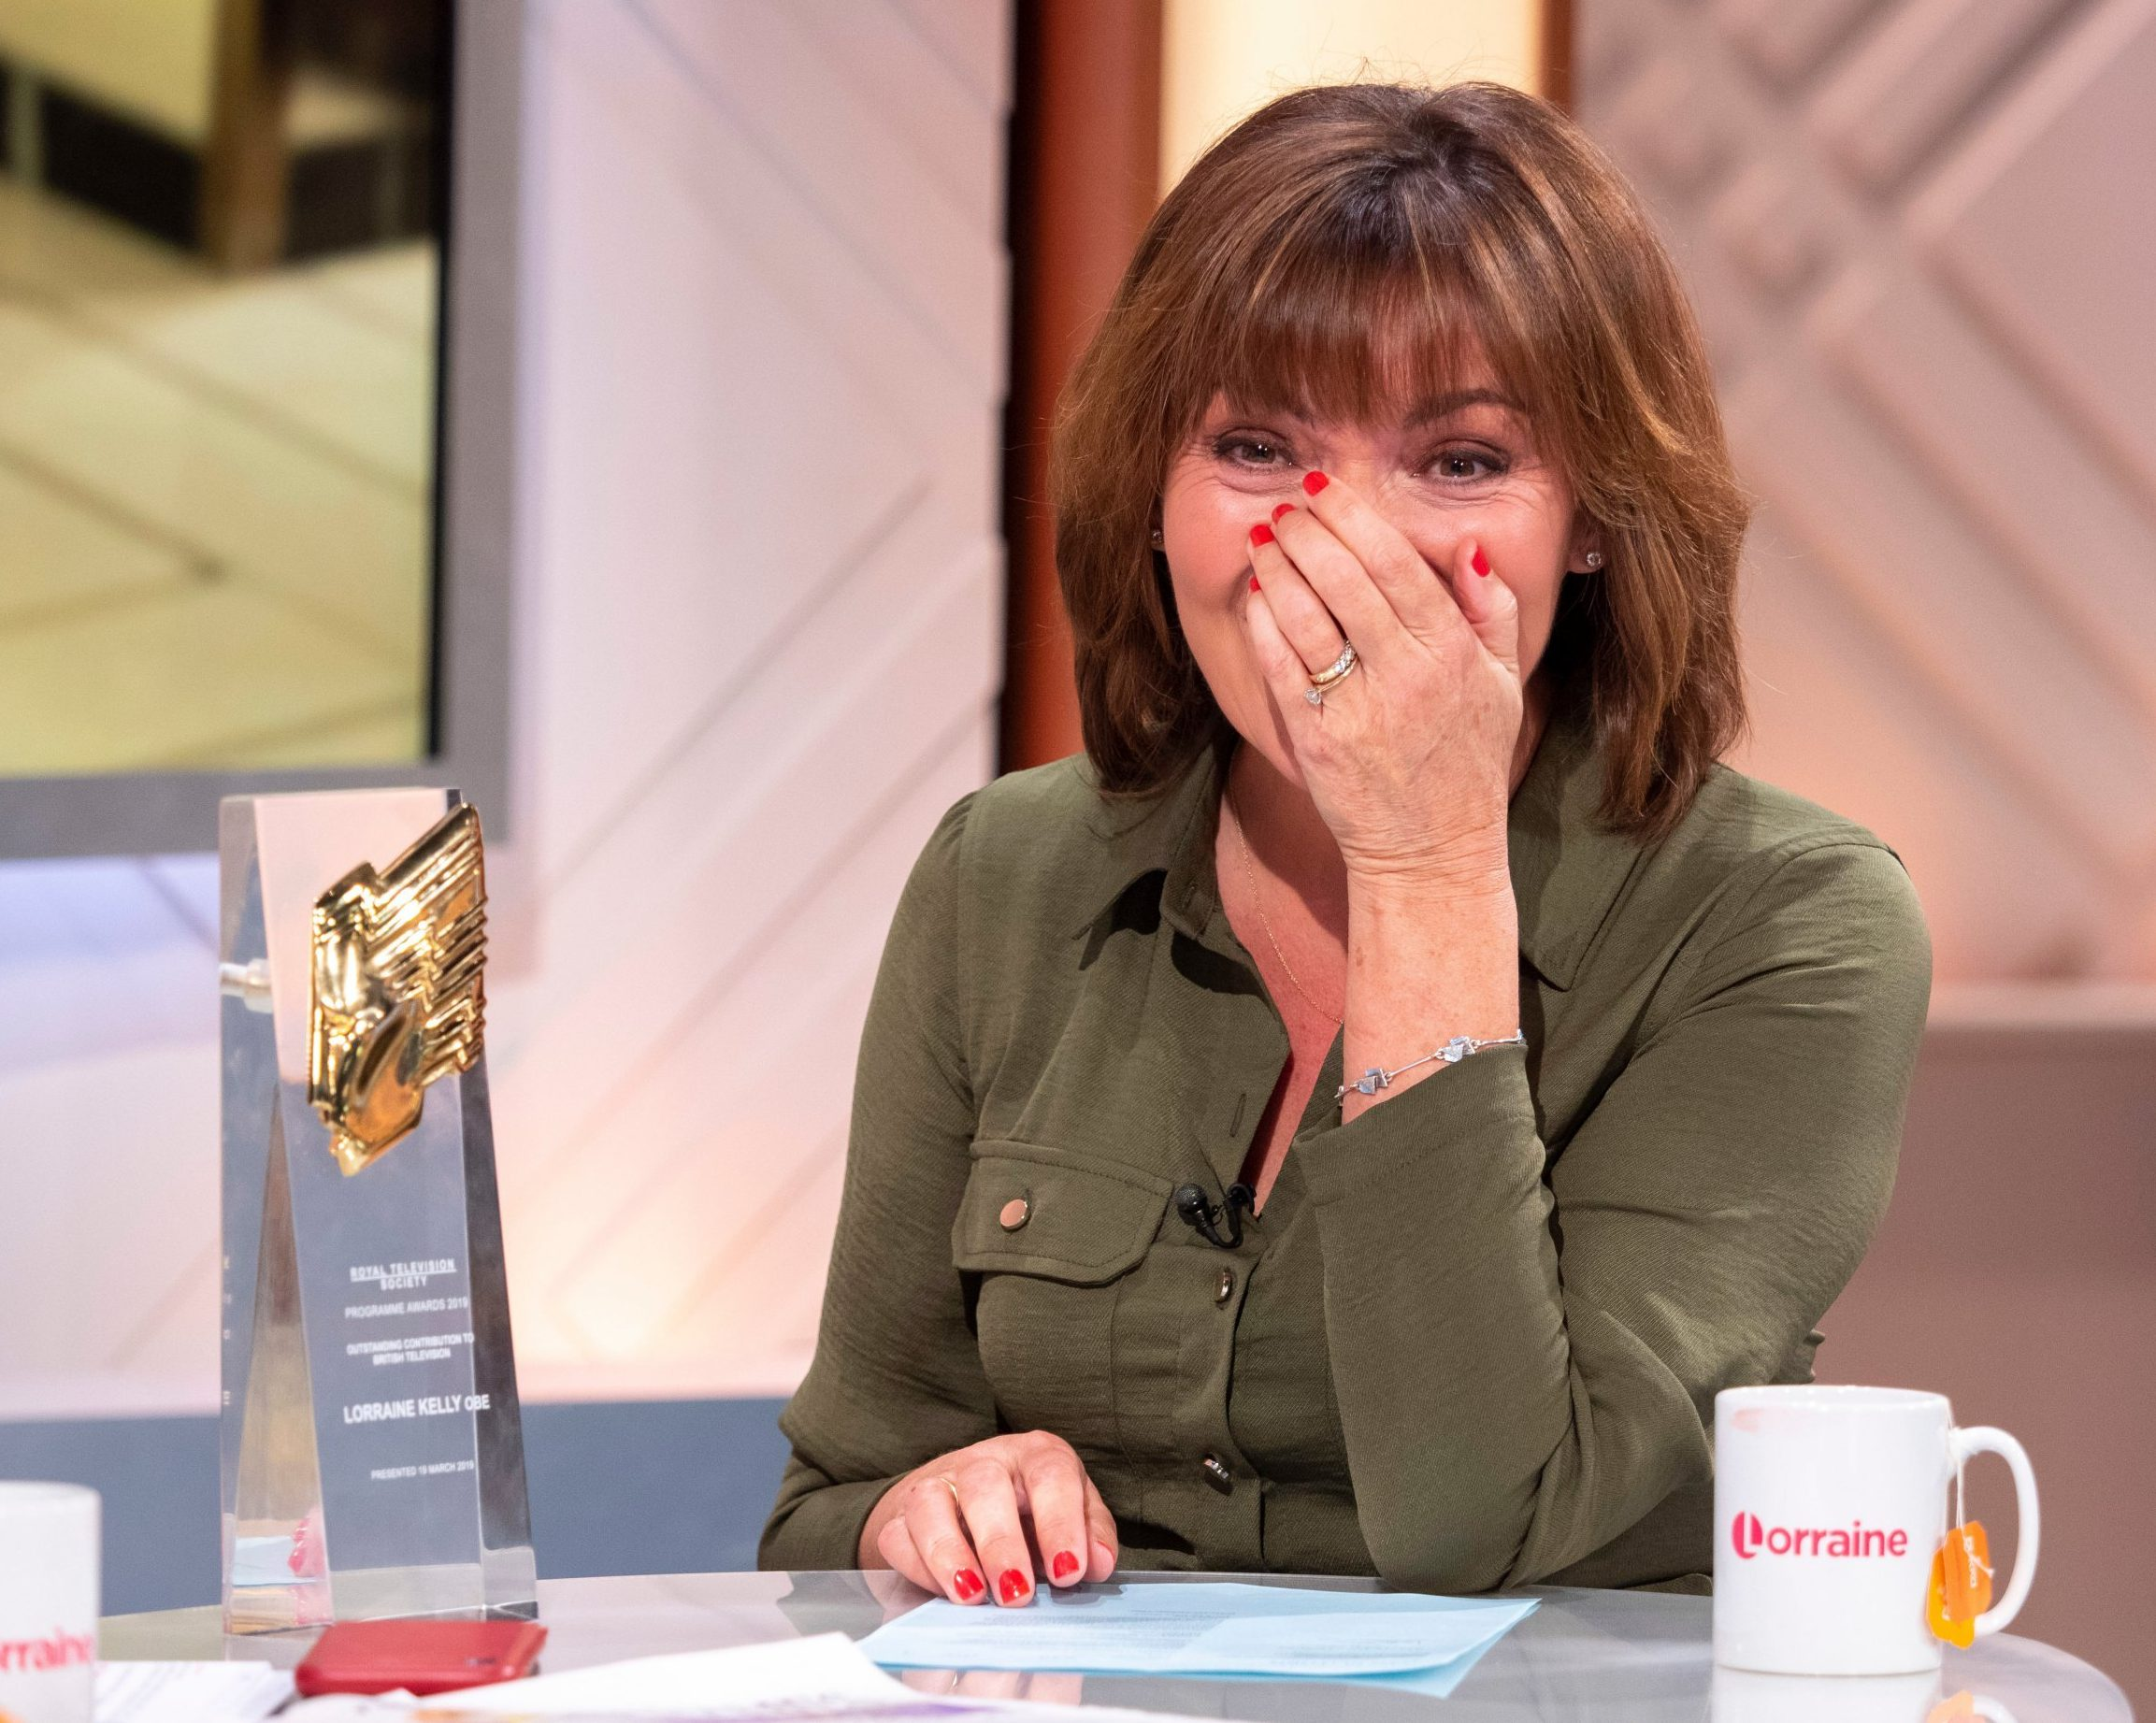 Lorraine Kelly says she never takes her bra off, even wearing it to bed